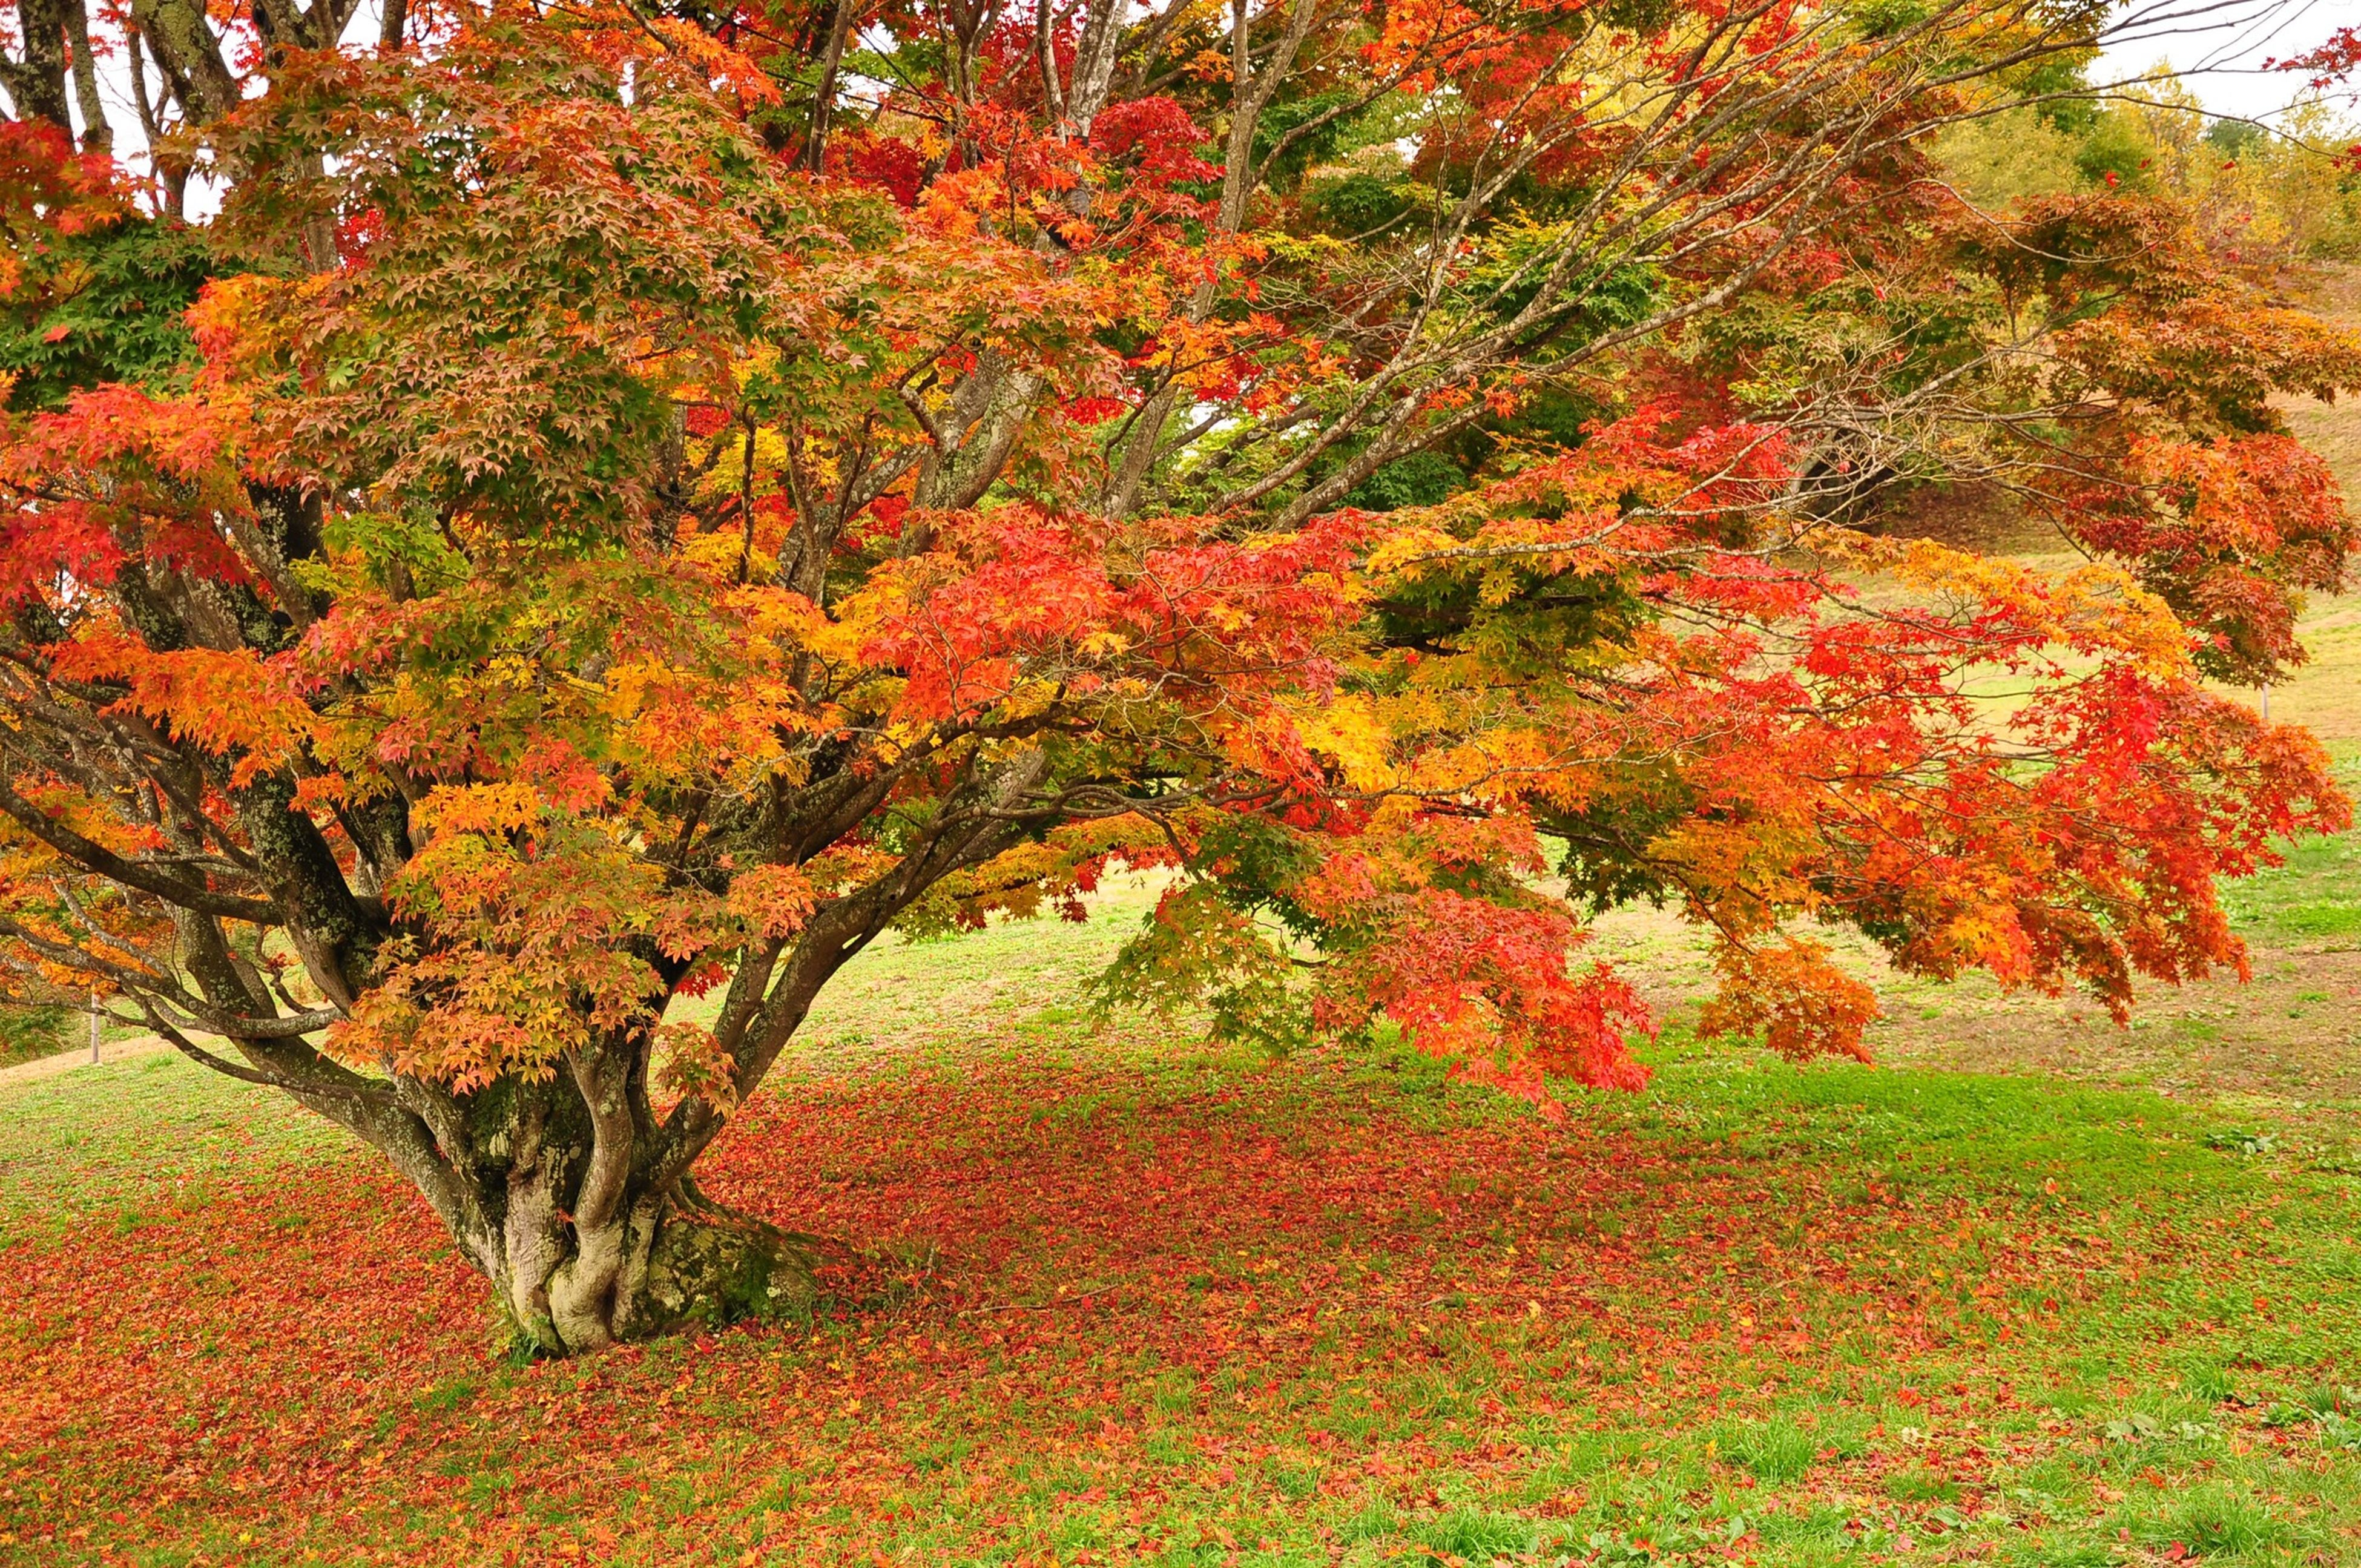 tree, autumn, growth, change, beauty in nature, tranquility, orange color, nature, season, tranquil scene, scenics, lush foliage, branch, forest, red, plant, idyllic, day, green color, no people